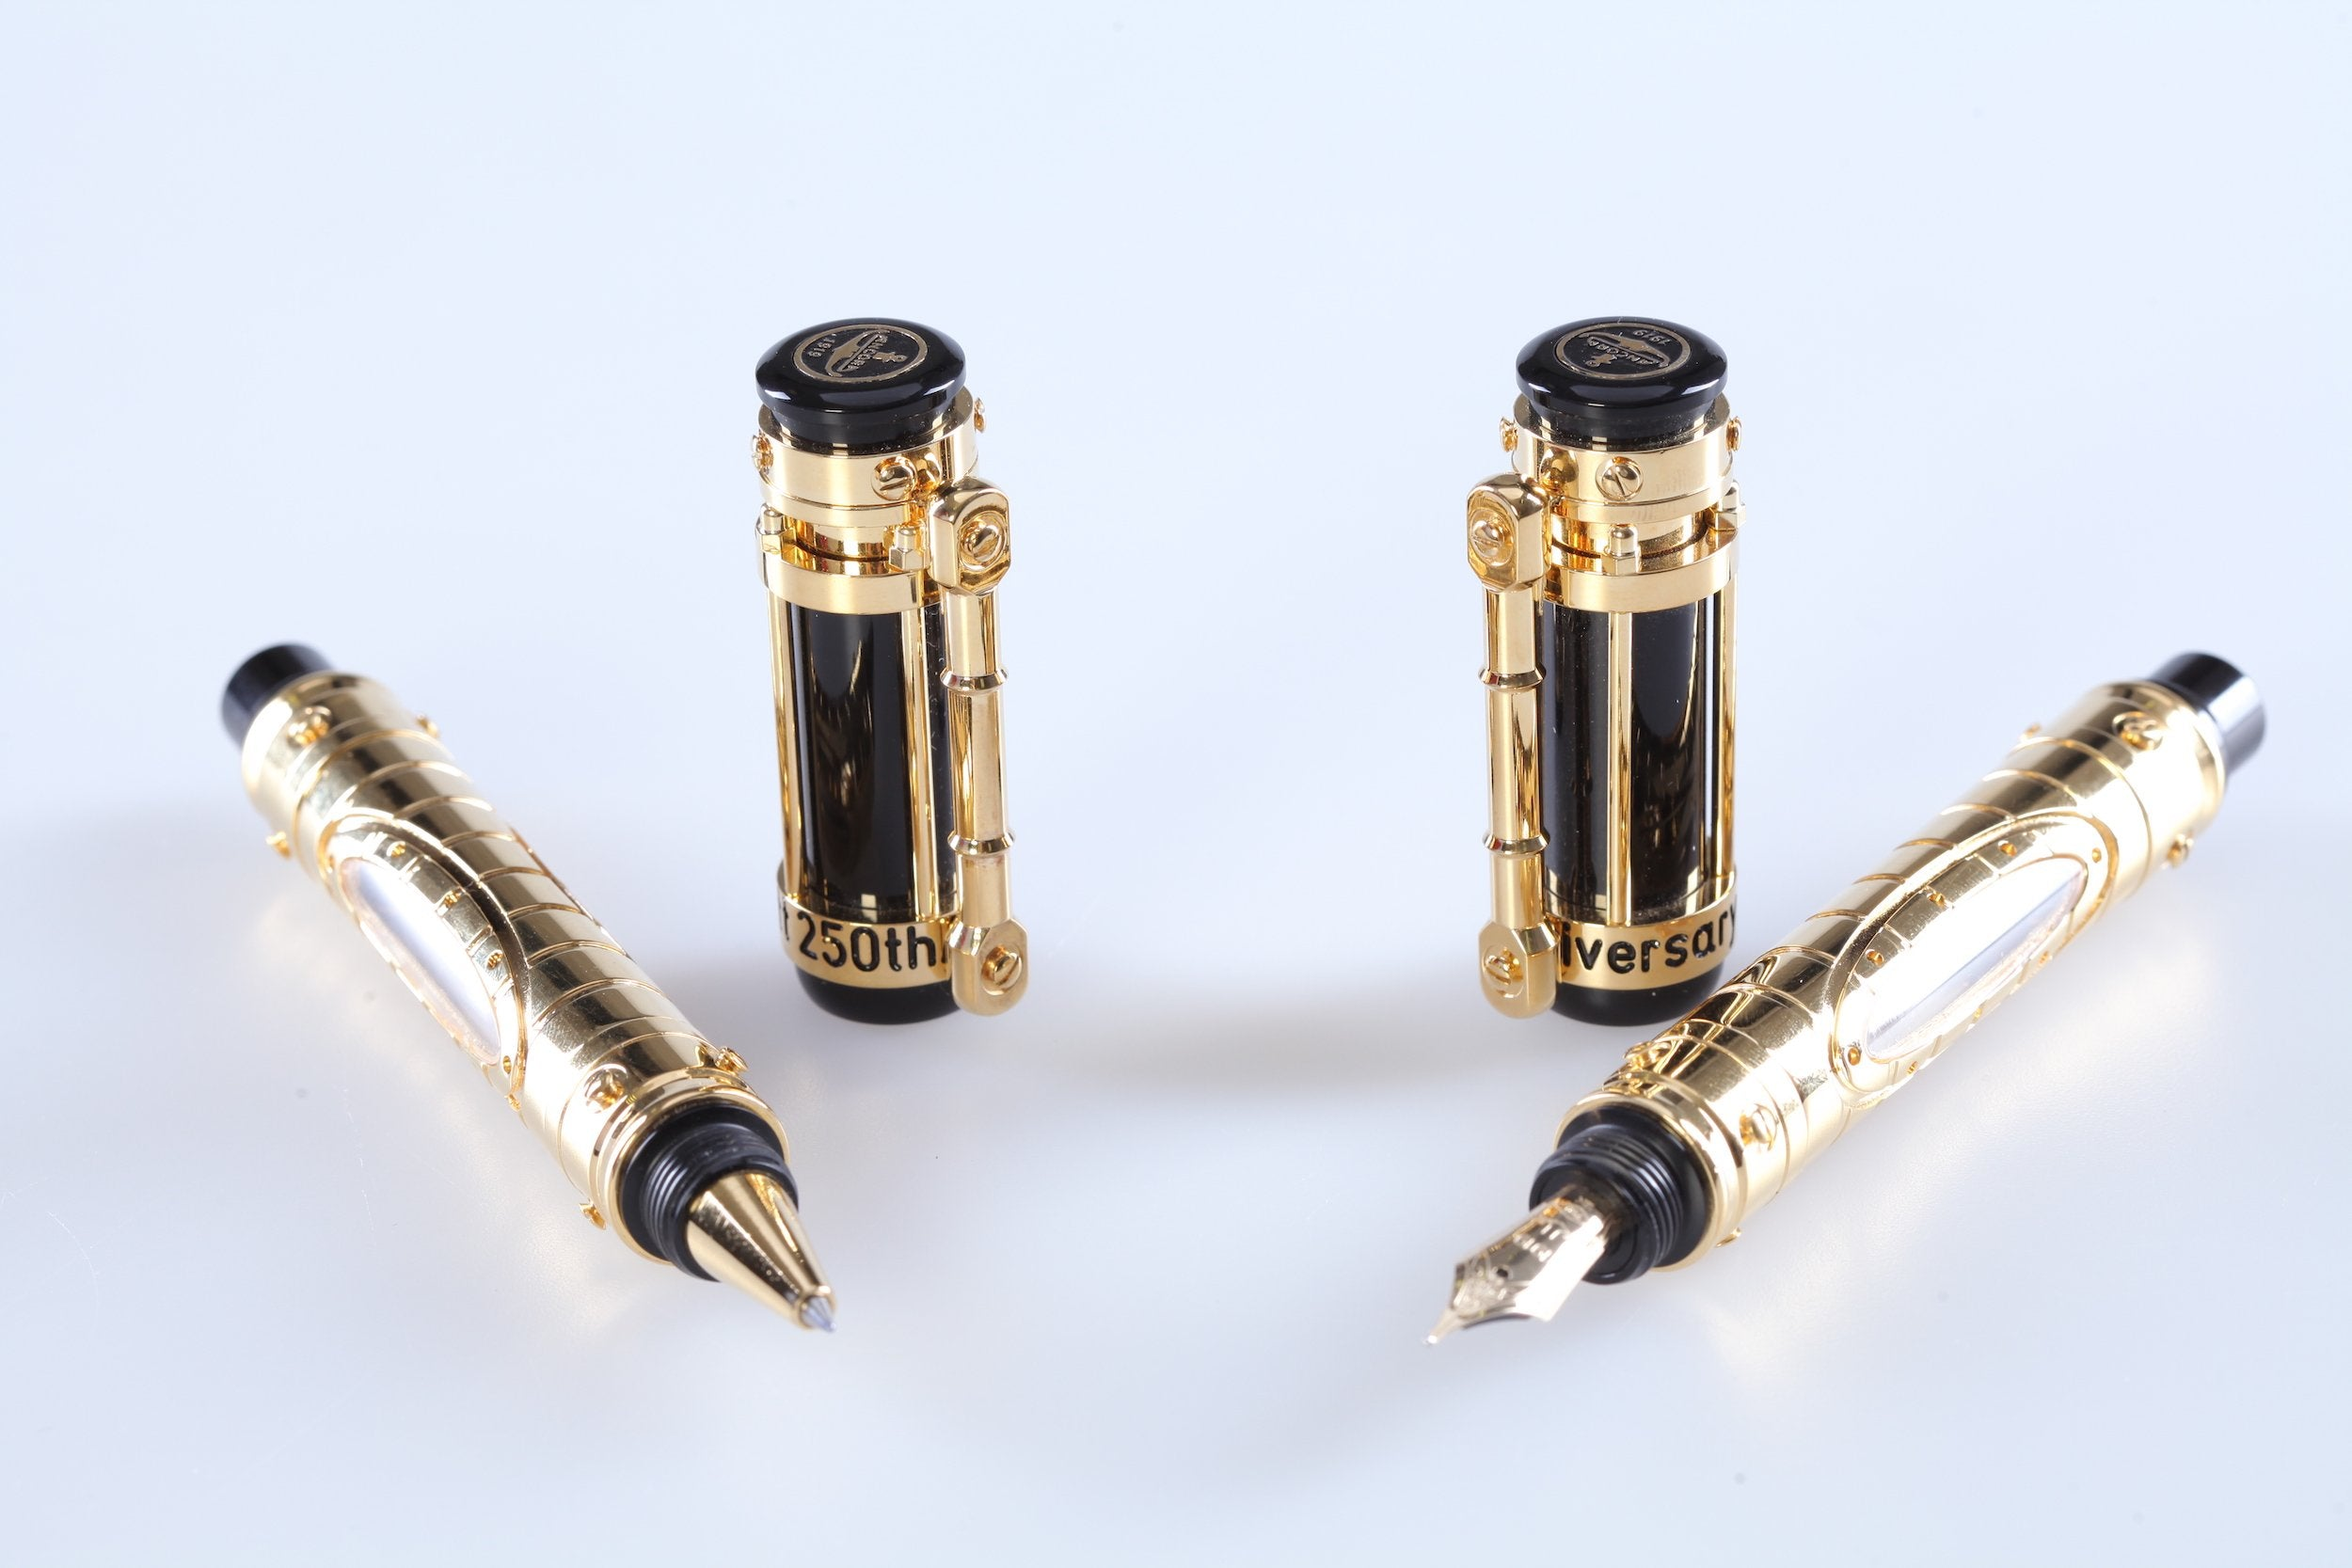 James Watt 250th Anniversary Fountain Pen